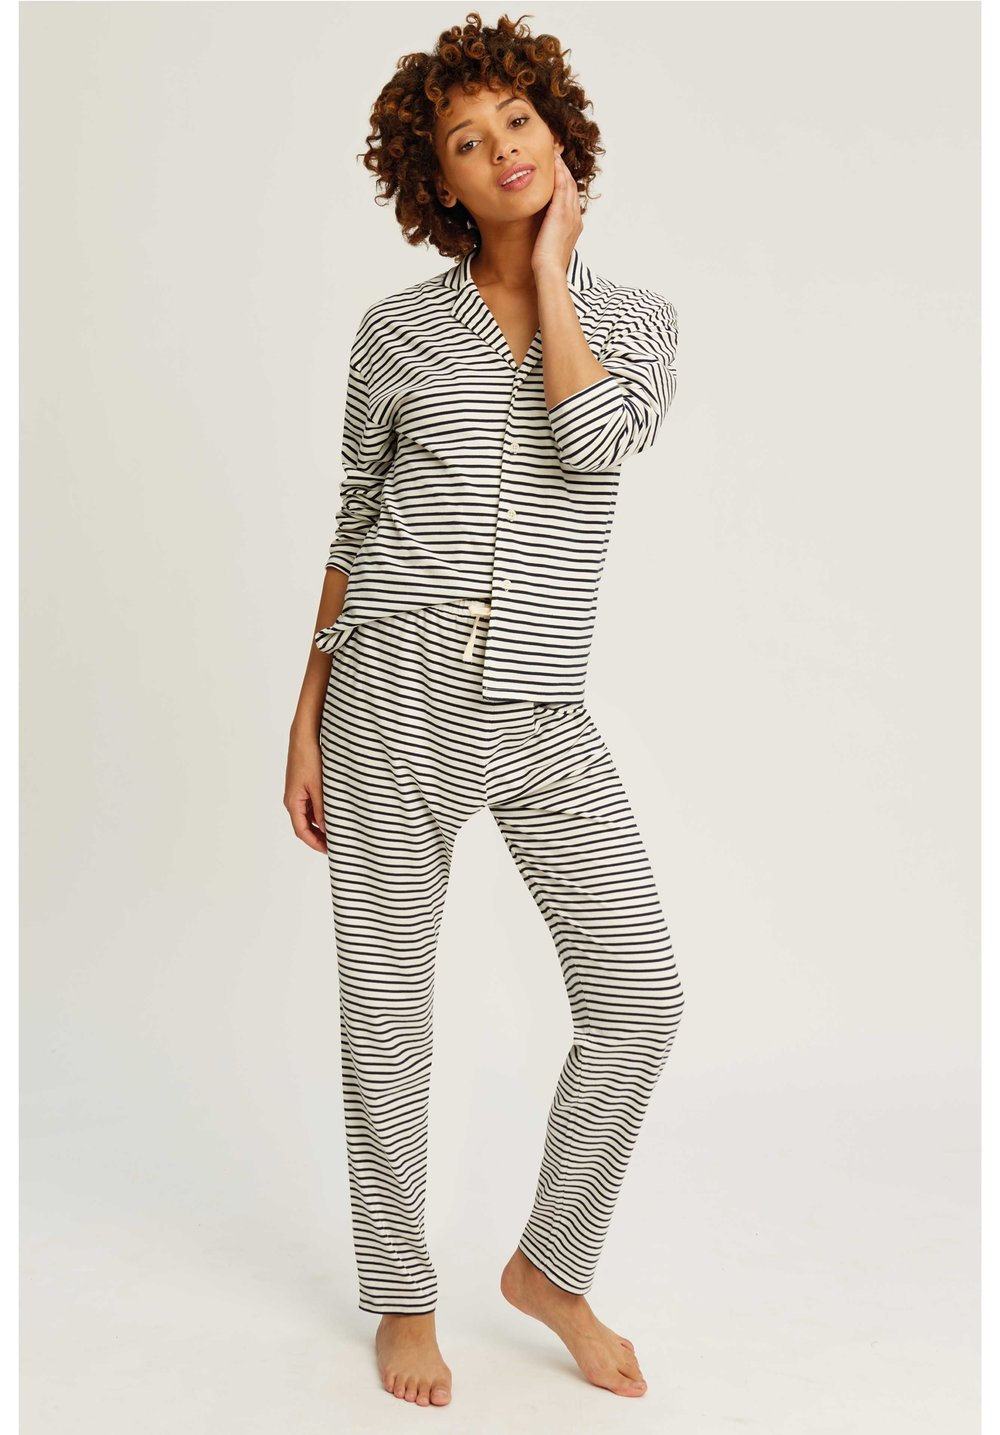 Organic cotton - Fair-trade pioneer People Tree goes from strength to strength. These striped print PJ's, £74, are perfect for lounging or sleeping.www.peopletree.co.uk